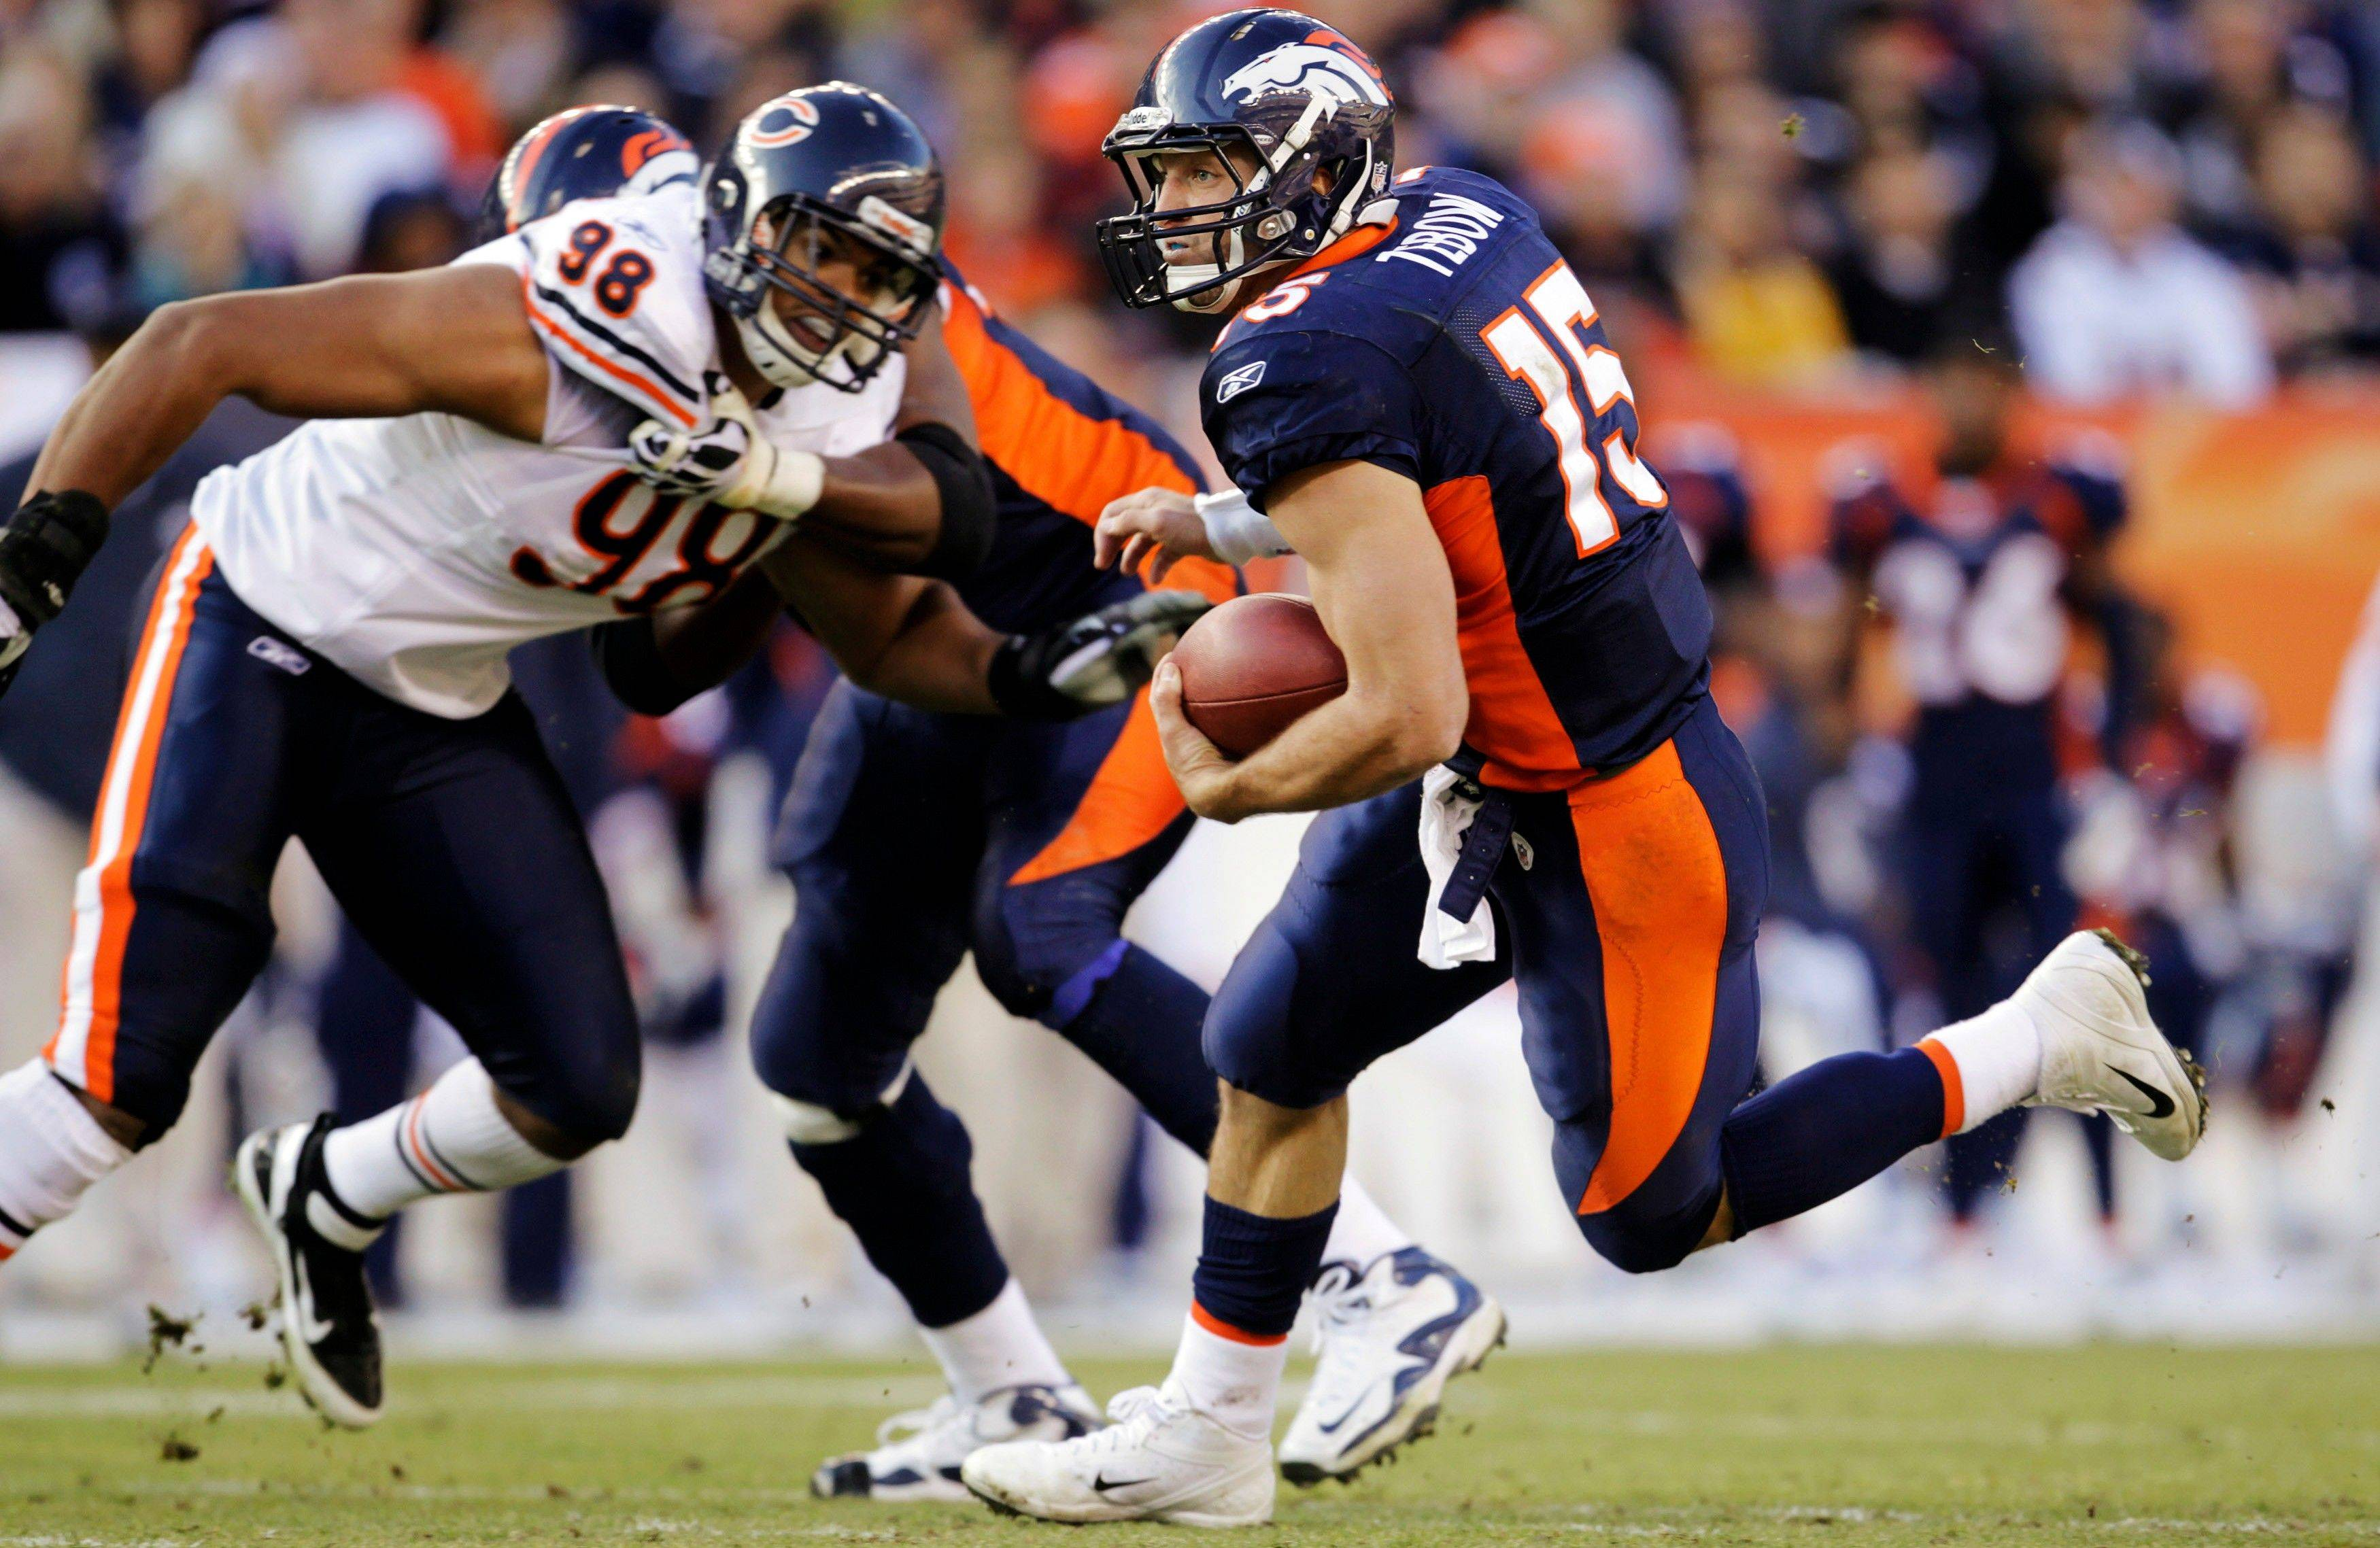 Denver Broncos quarterback Tim Tebow (15) runs for a first down as Chicago Bears defensive end Corey Wootton (98) is blocked in the second quarter.